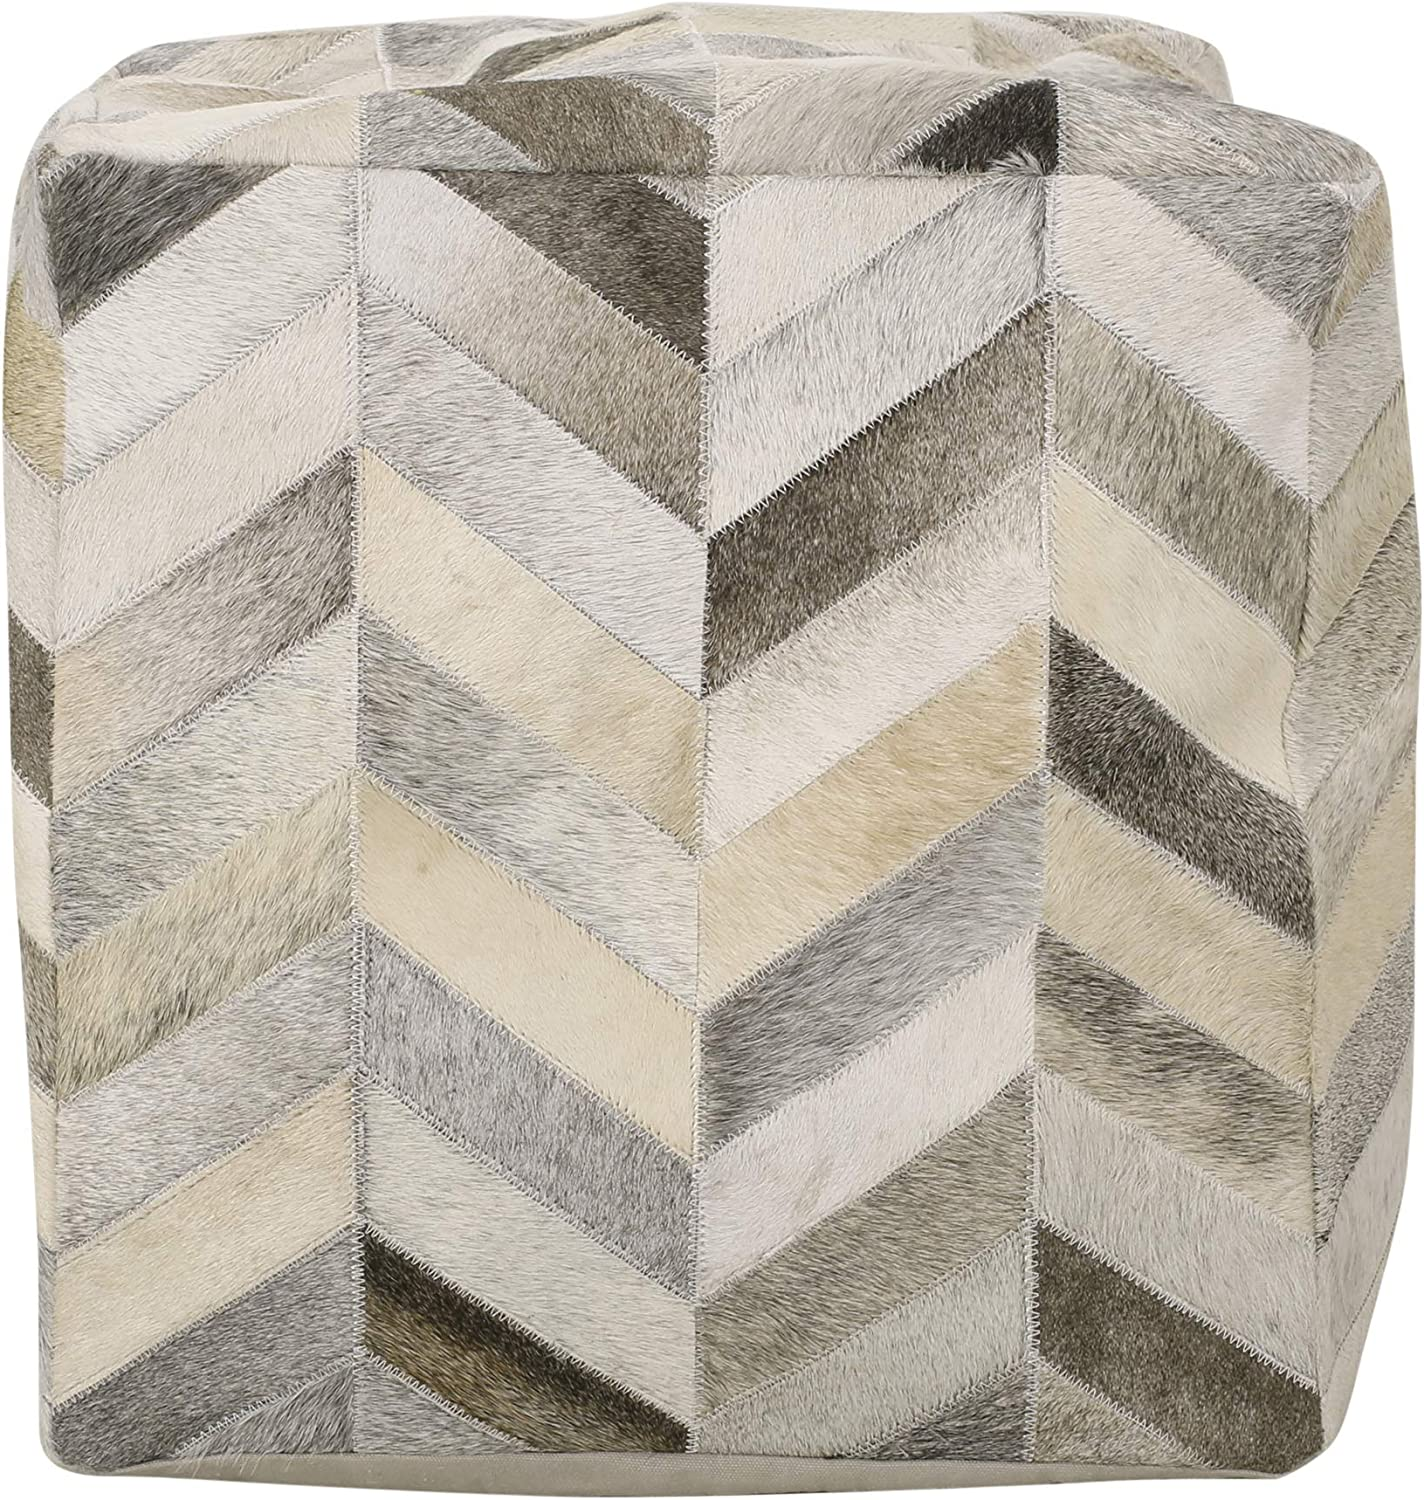 Christopher Max 80% OFF Knight Home 313541 Beige Pouf Cash special price Brown Gray